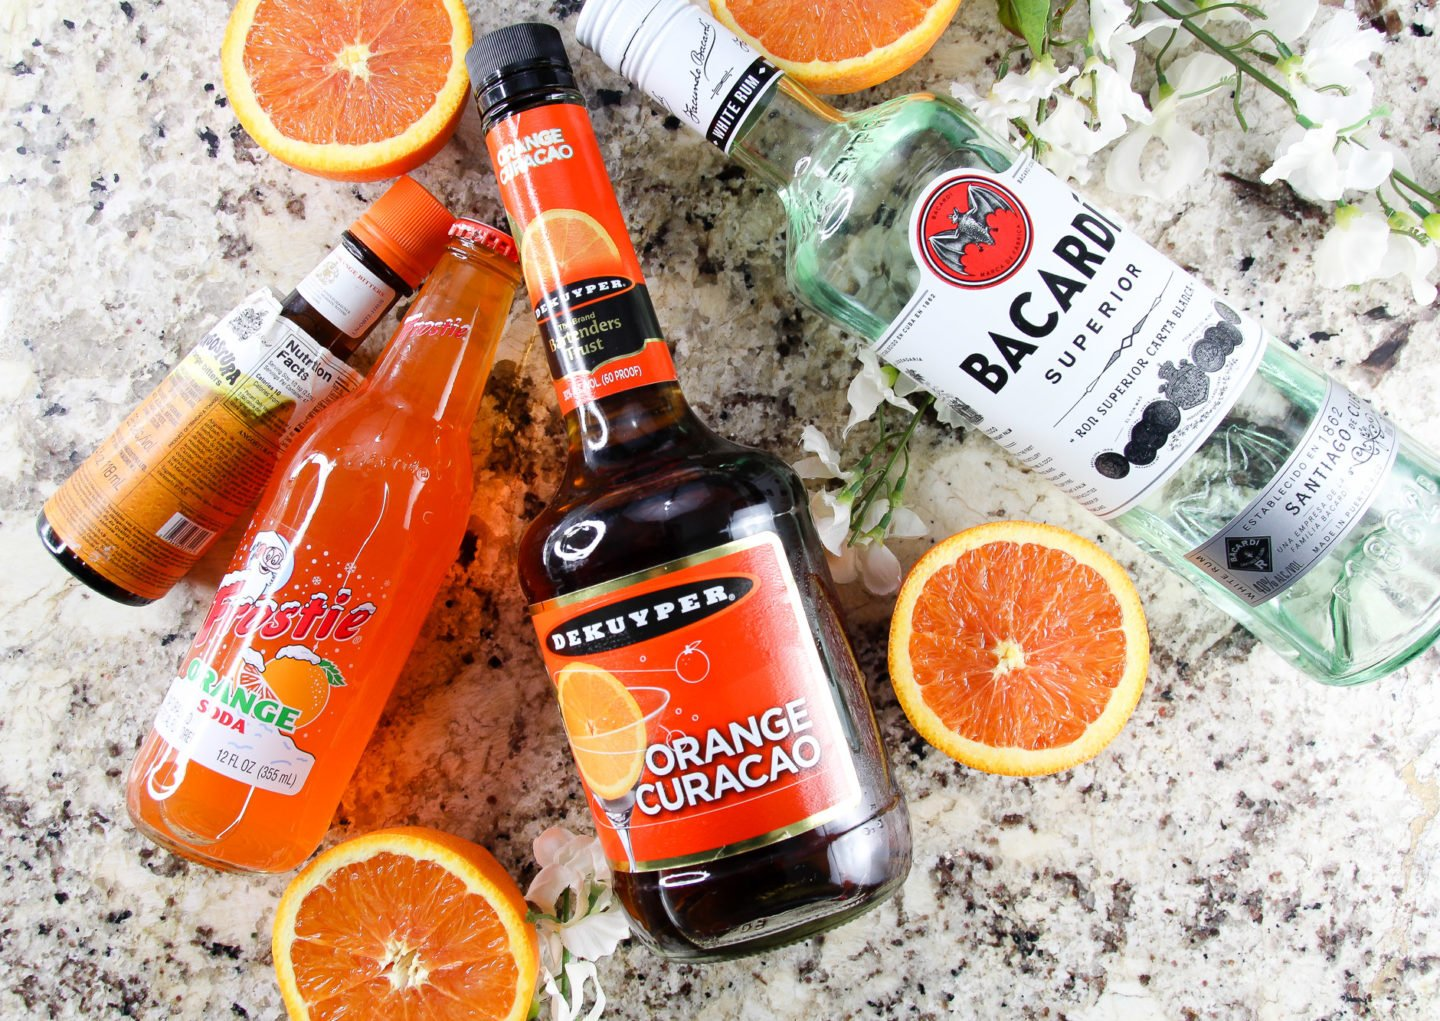 Ingredients needed for orange sunset cocktail are orange soda, orange curacao (or triple sec), and rum.